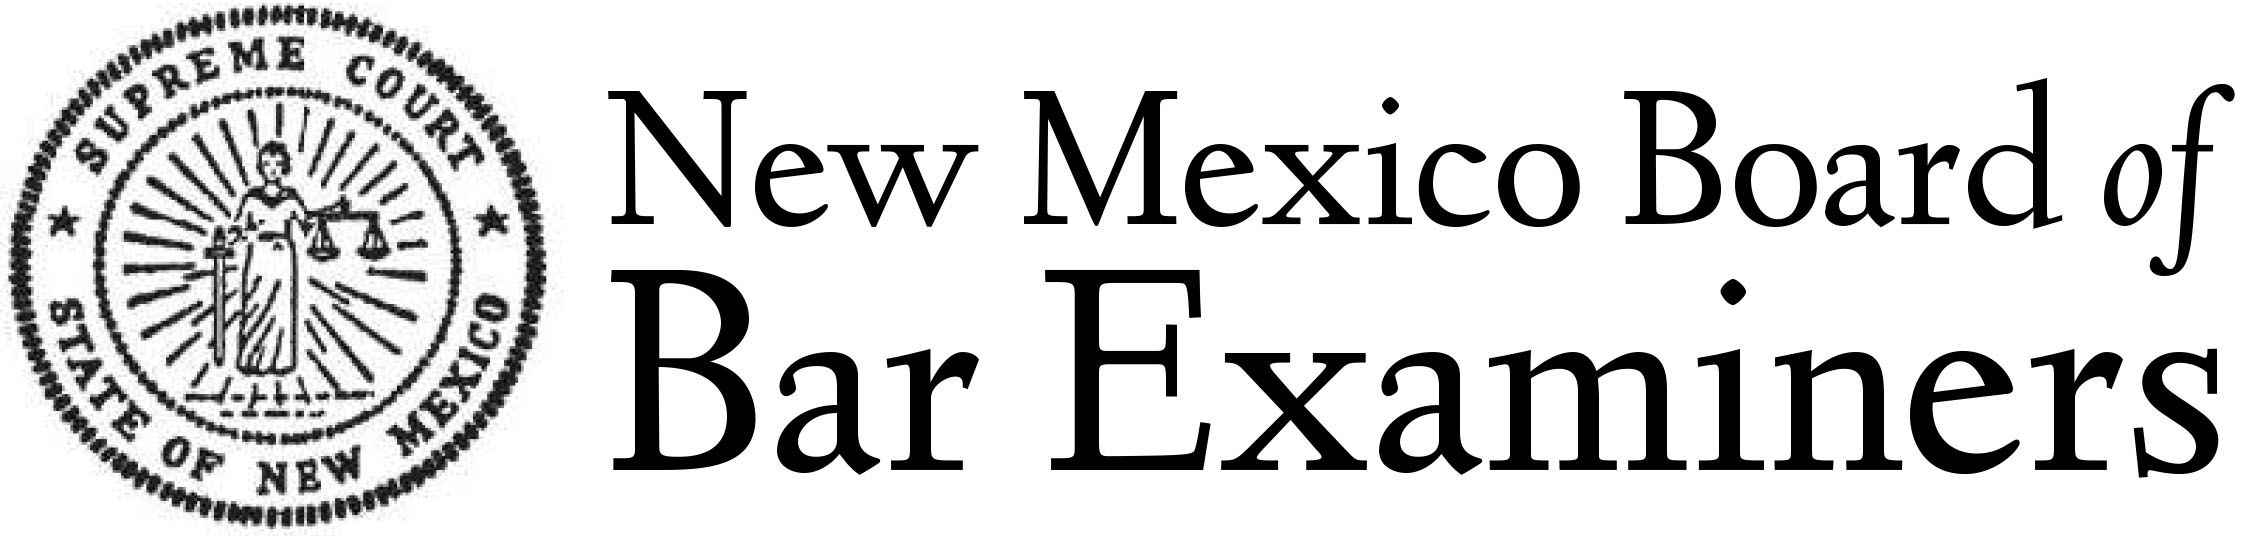 New Mexico Board of Bar Examiners